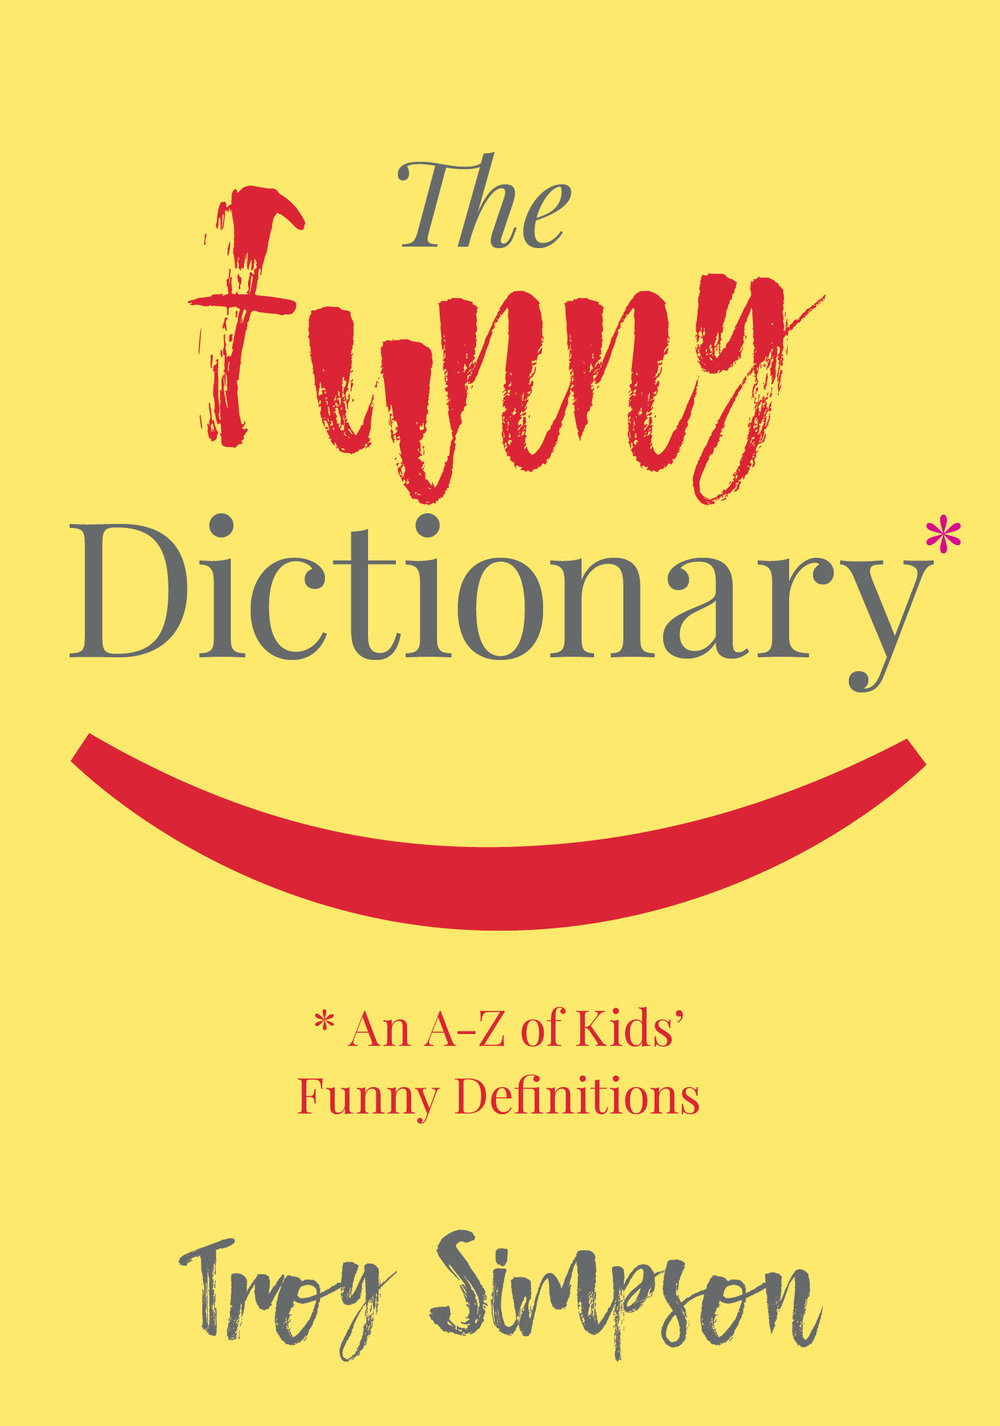 Funny Dictionary_cover_05.jpg